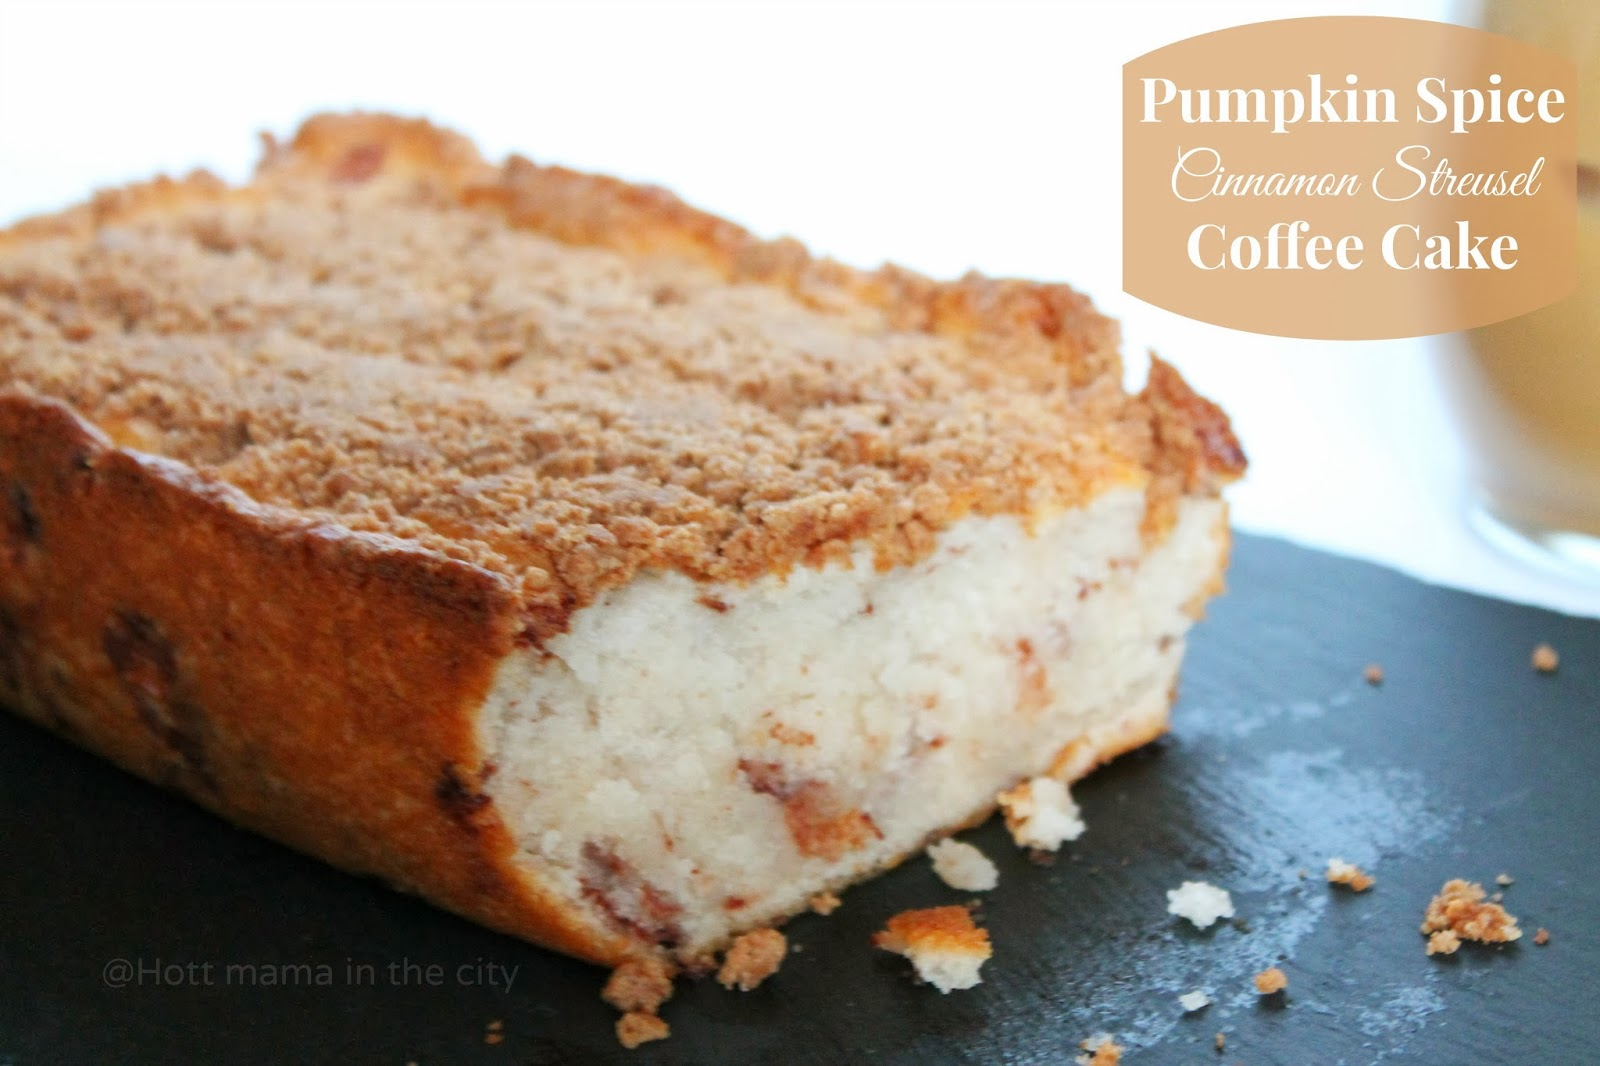 ... Pumpkin Spice Cinnamon Streusel Coffee Cake with Pumpkin Spice Coffee